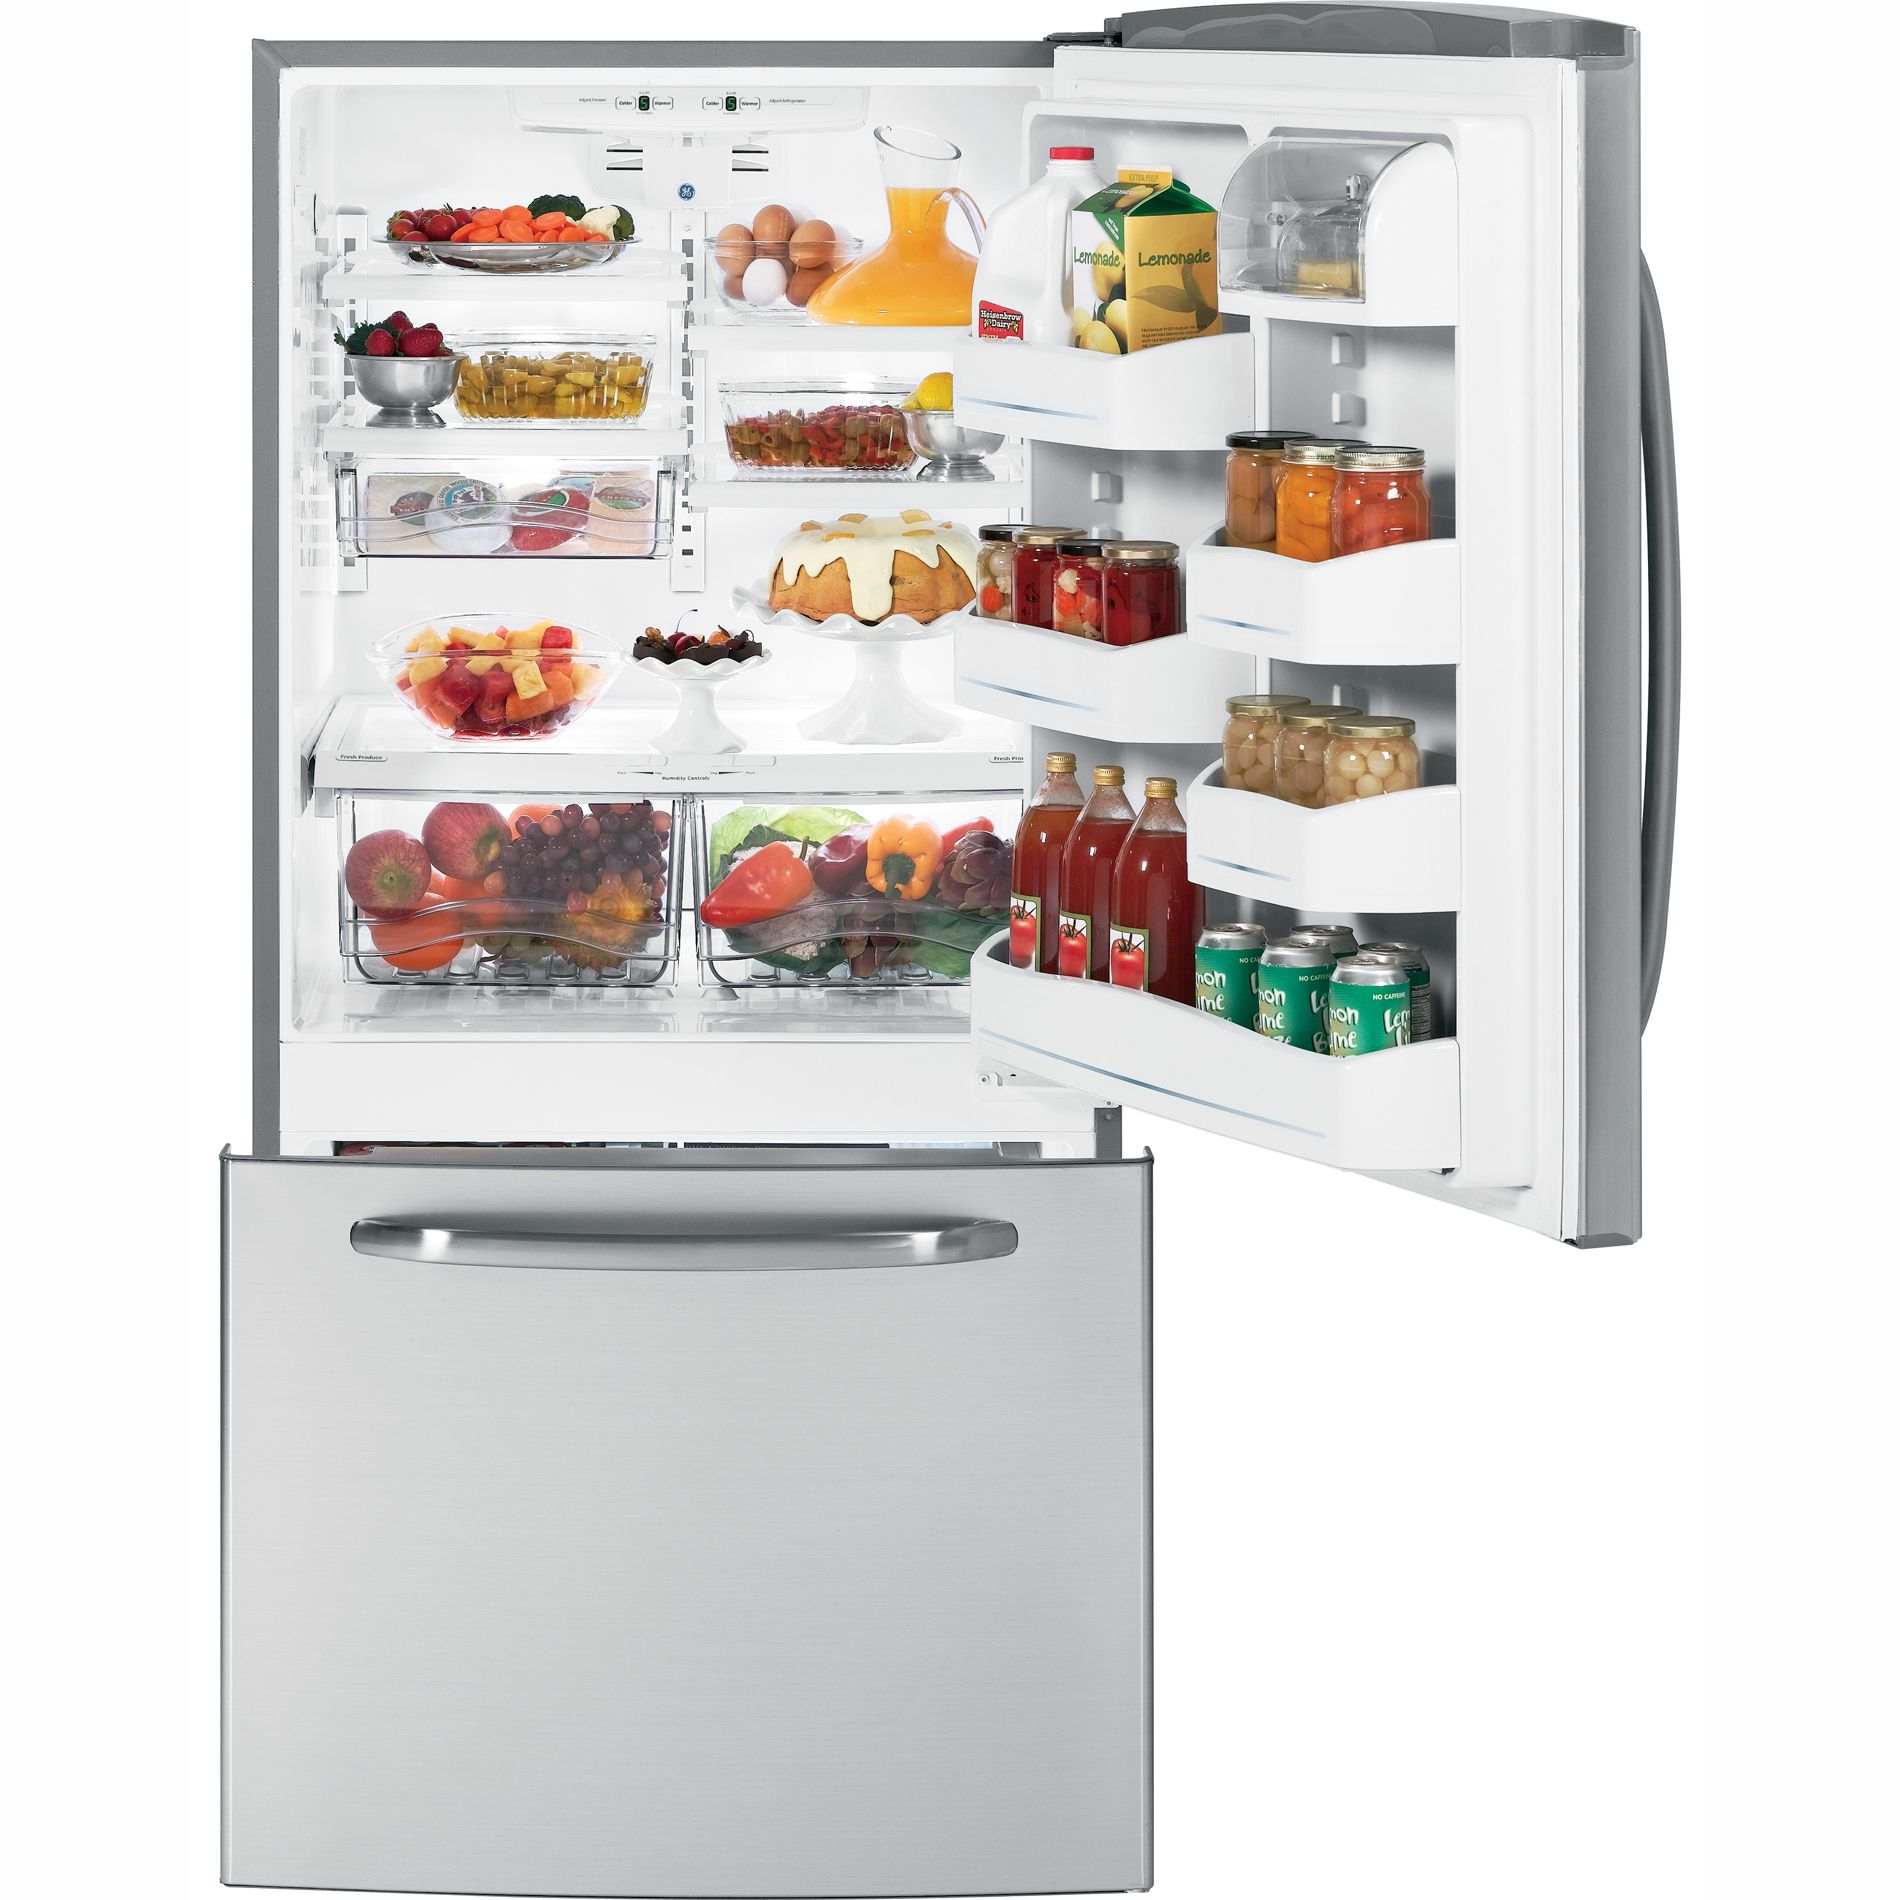 GE 22.7 cu. ft. Bottom Freezer Refrigerator (GDSL3KCY)